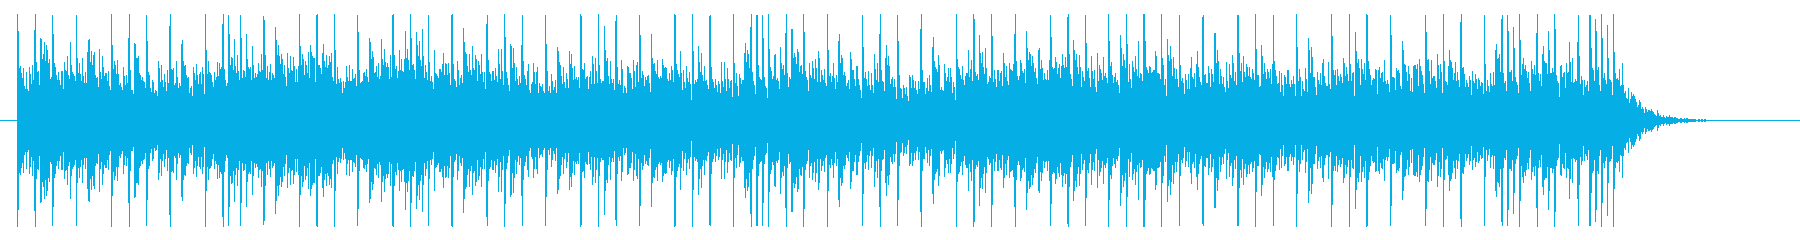 Glittering and mysterious and mysterious BGM's reproduced waveform